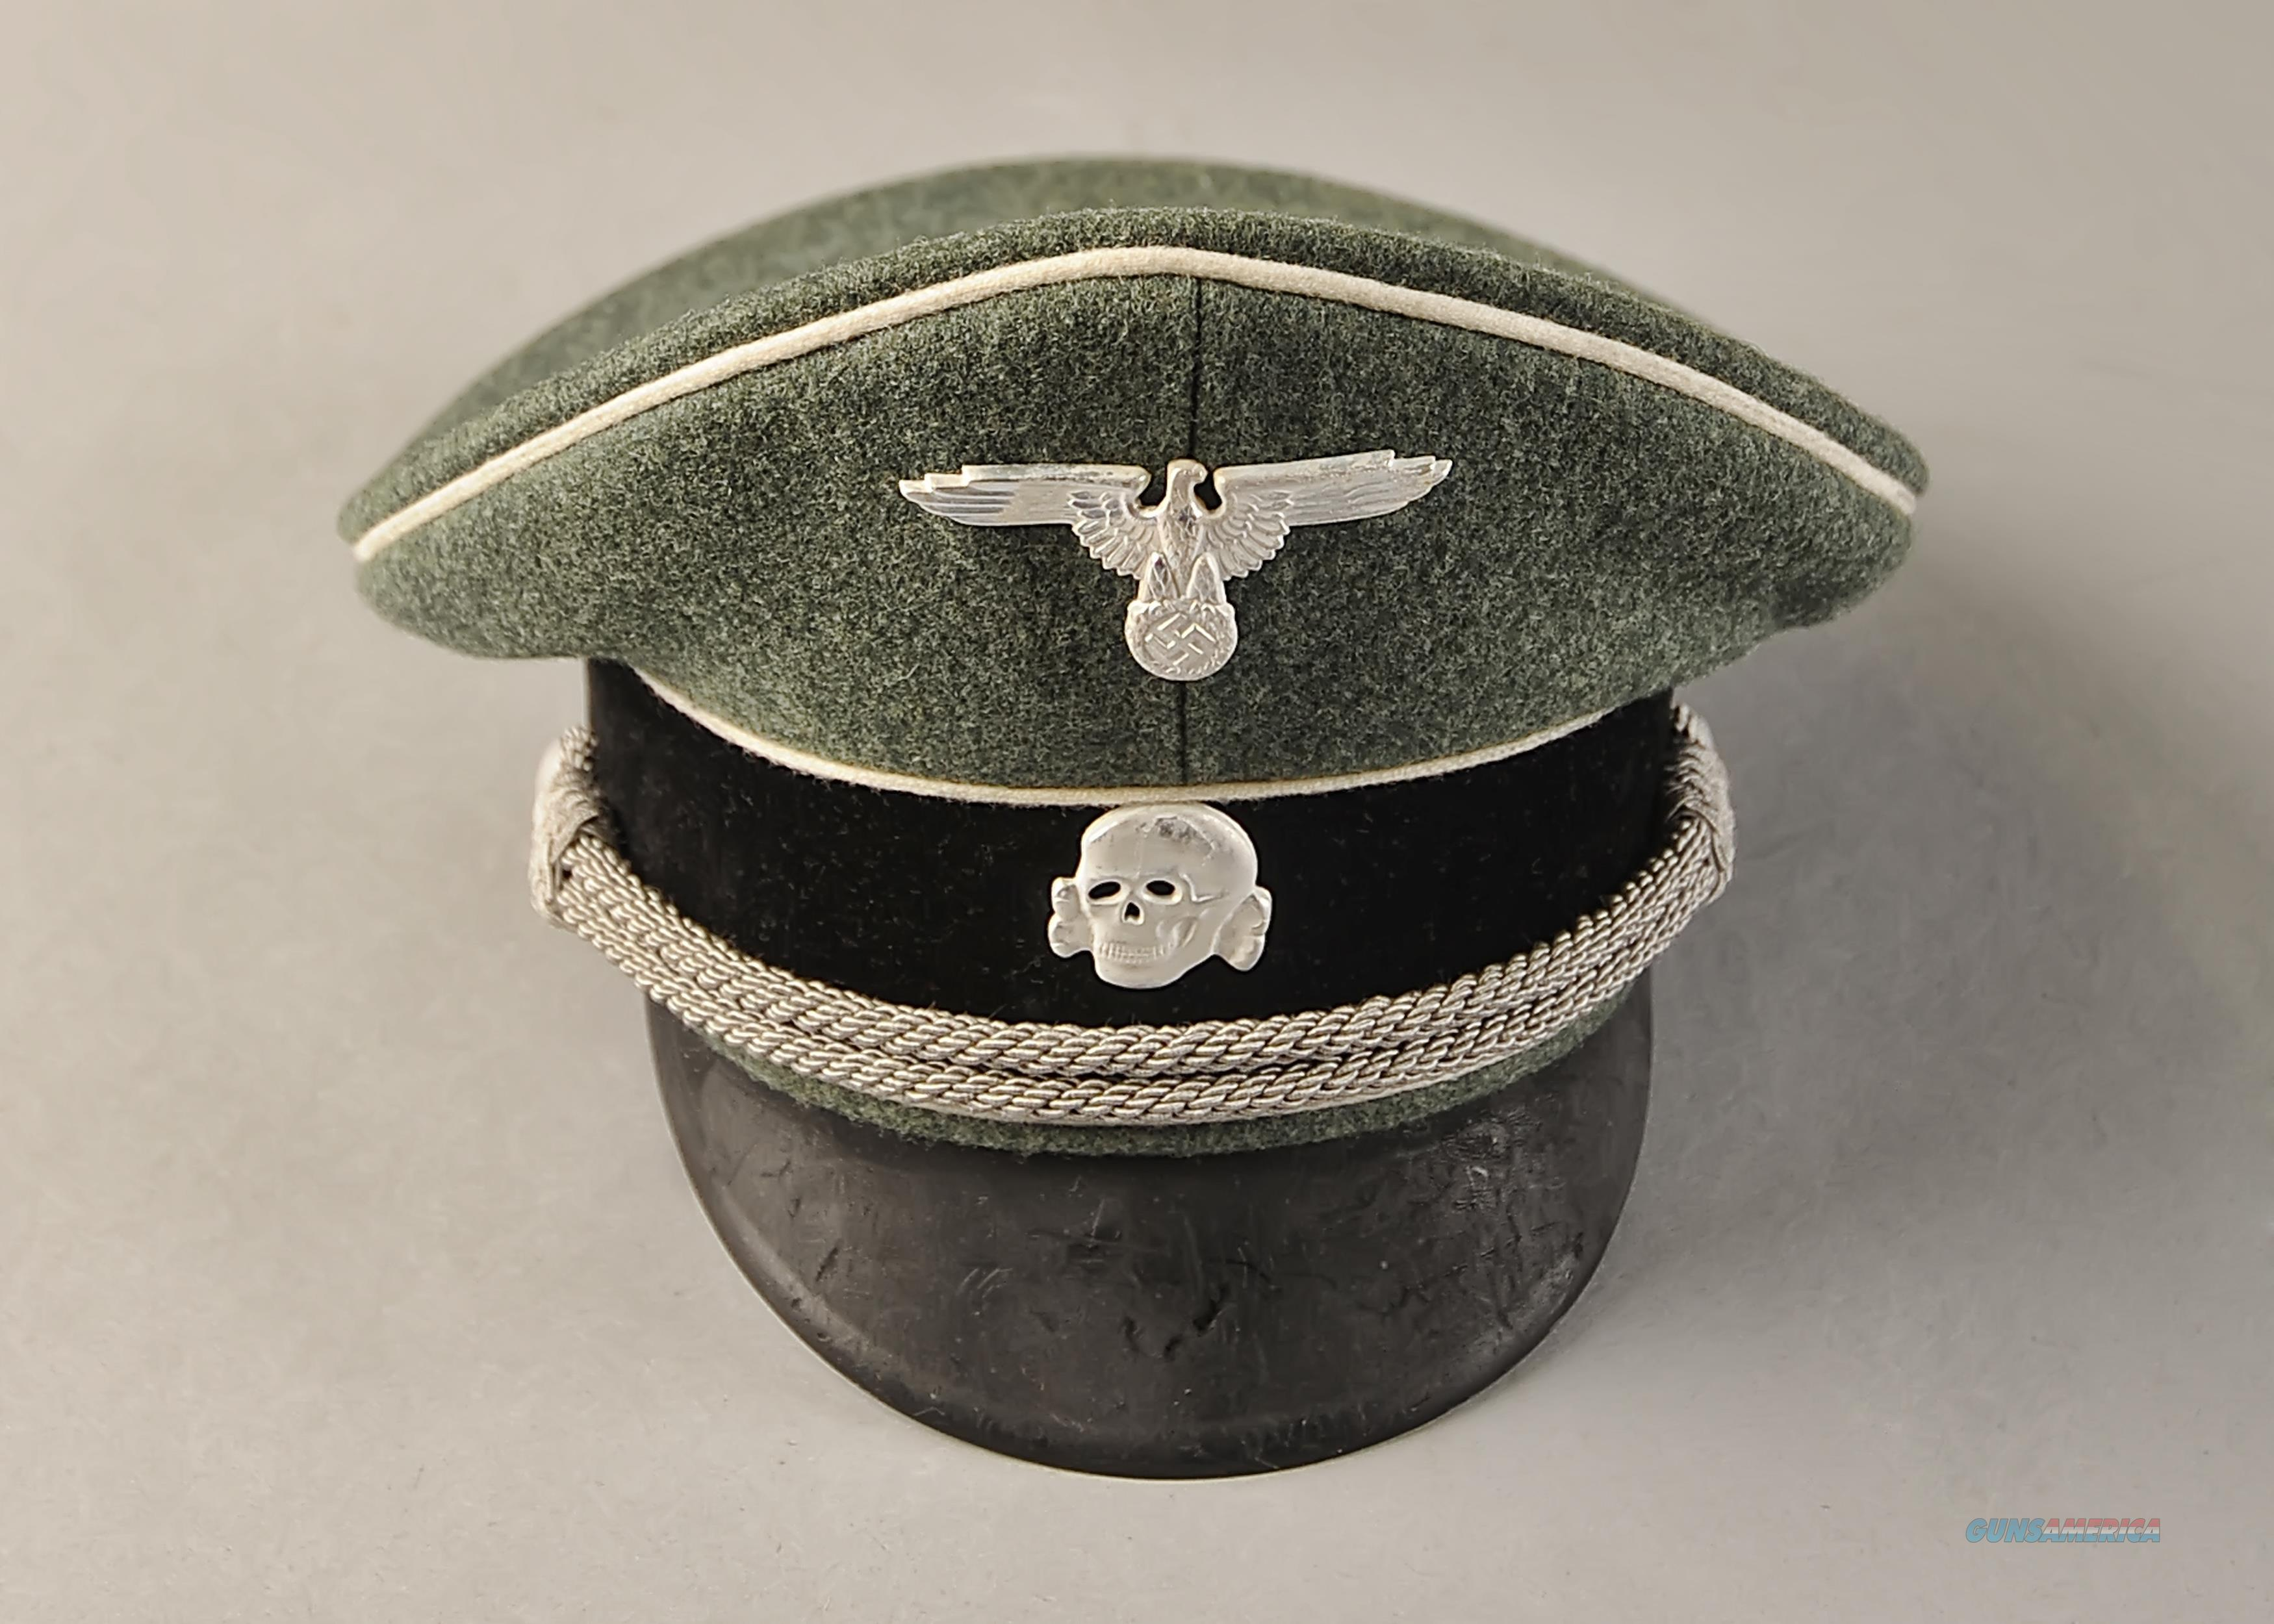 Waffen SS officer's peaked cap, authenticated, fantastic condition  Non-Guns > Military > Clothing/Camo